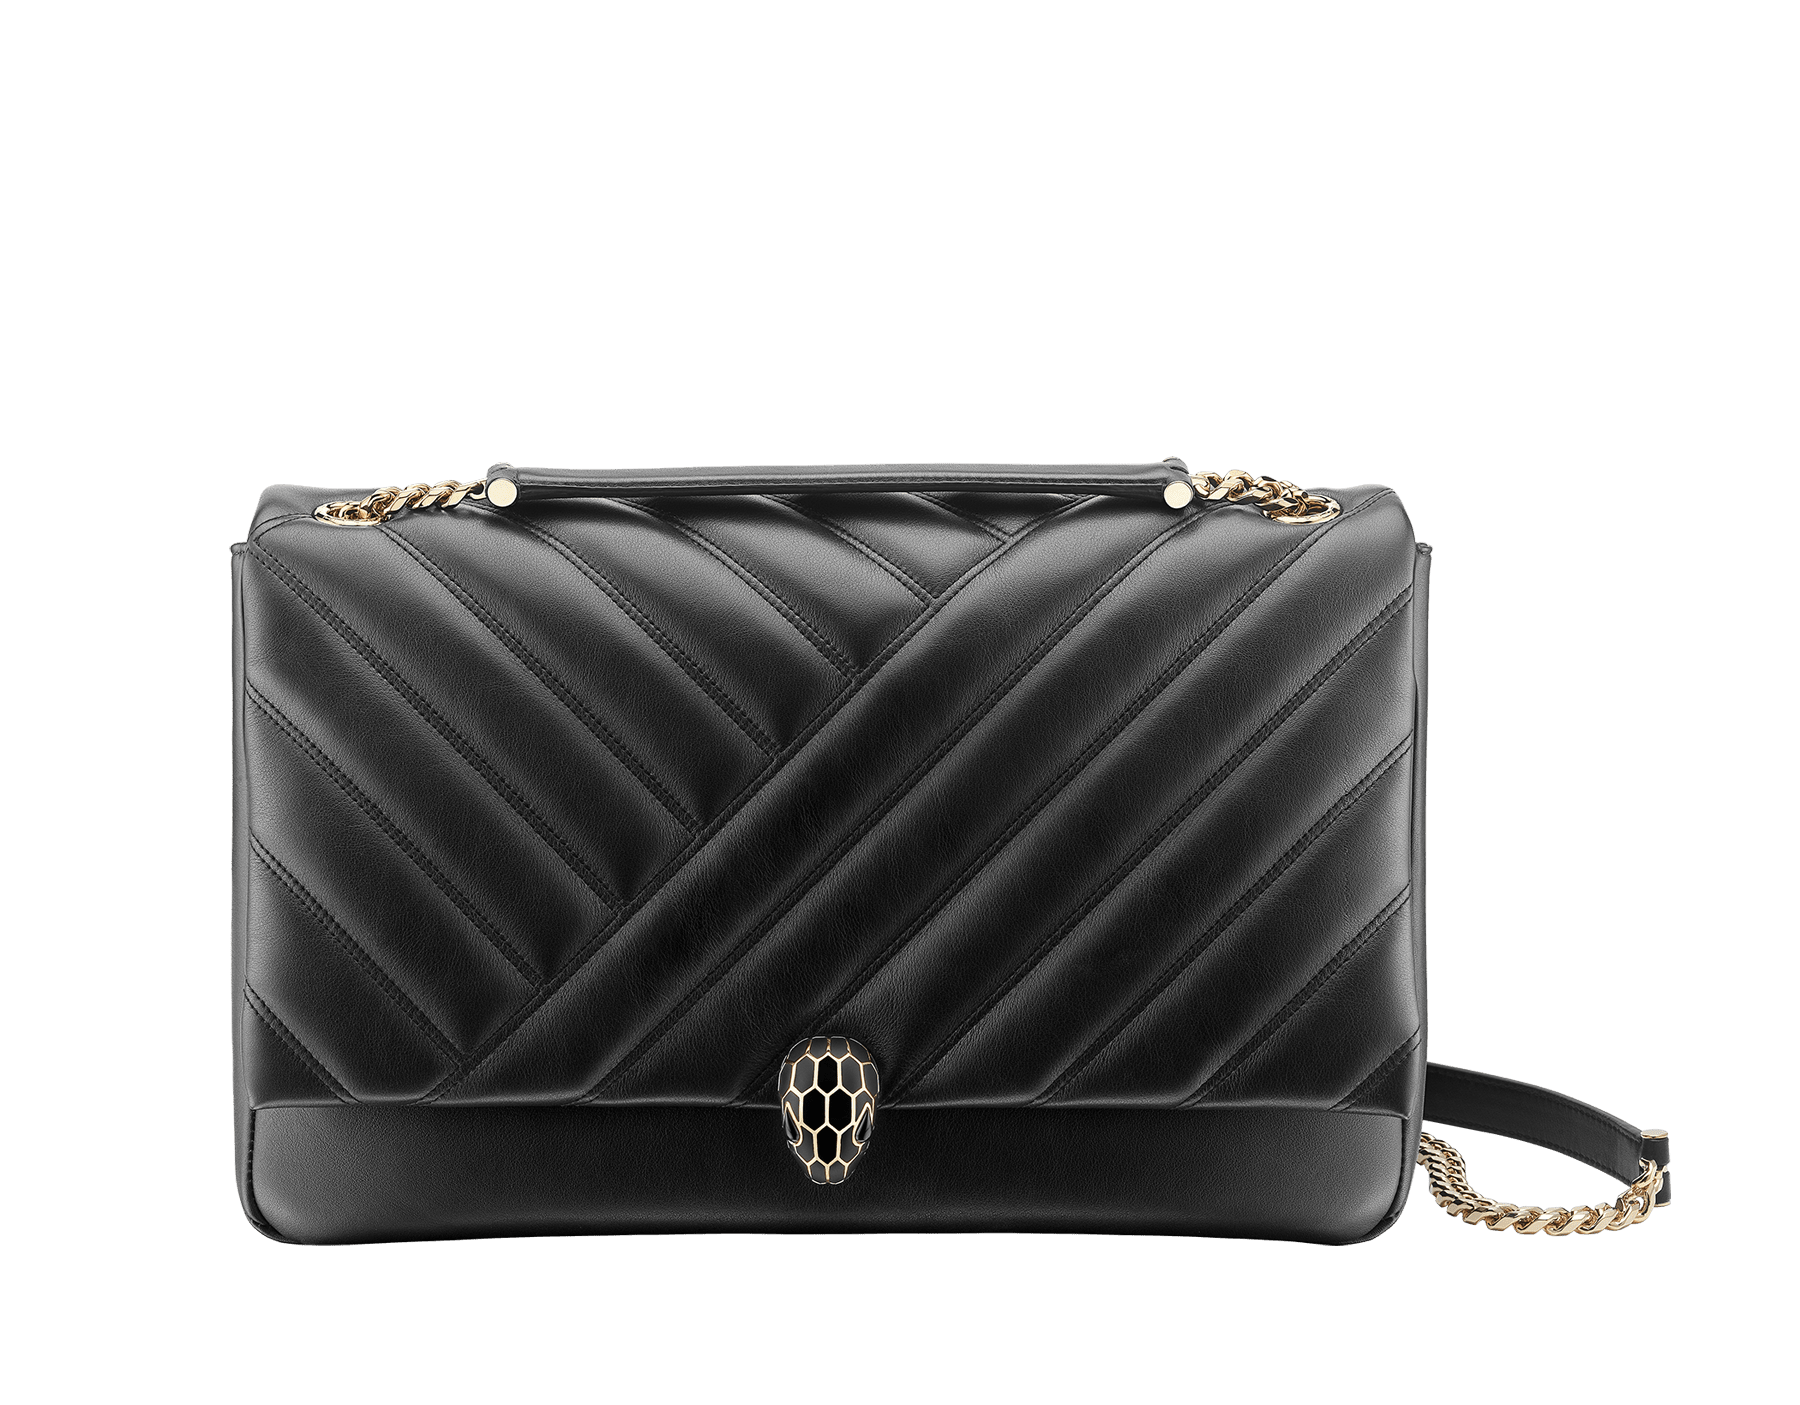 Serpenti Cabochon shoulder bag in soft matelassé black nappa leather with graphic motif and black calf leather. Snakehead closure in rose gold plated brass decorated with matte black and shiny black enamel, and black onyx eyes. 982-NSM image 1